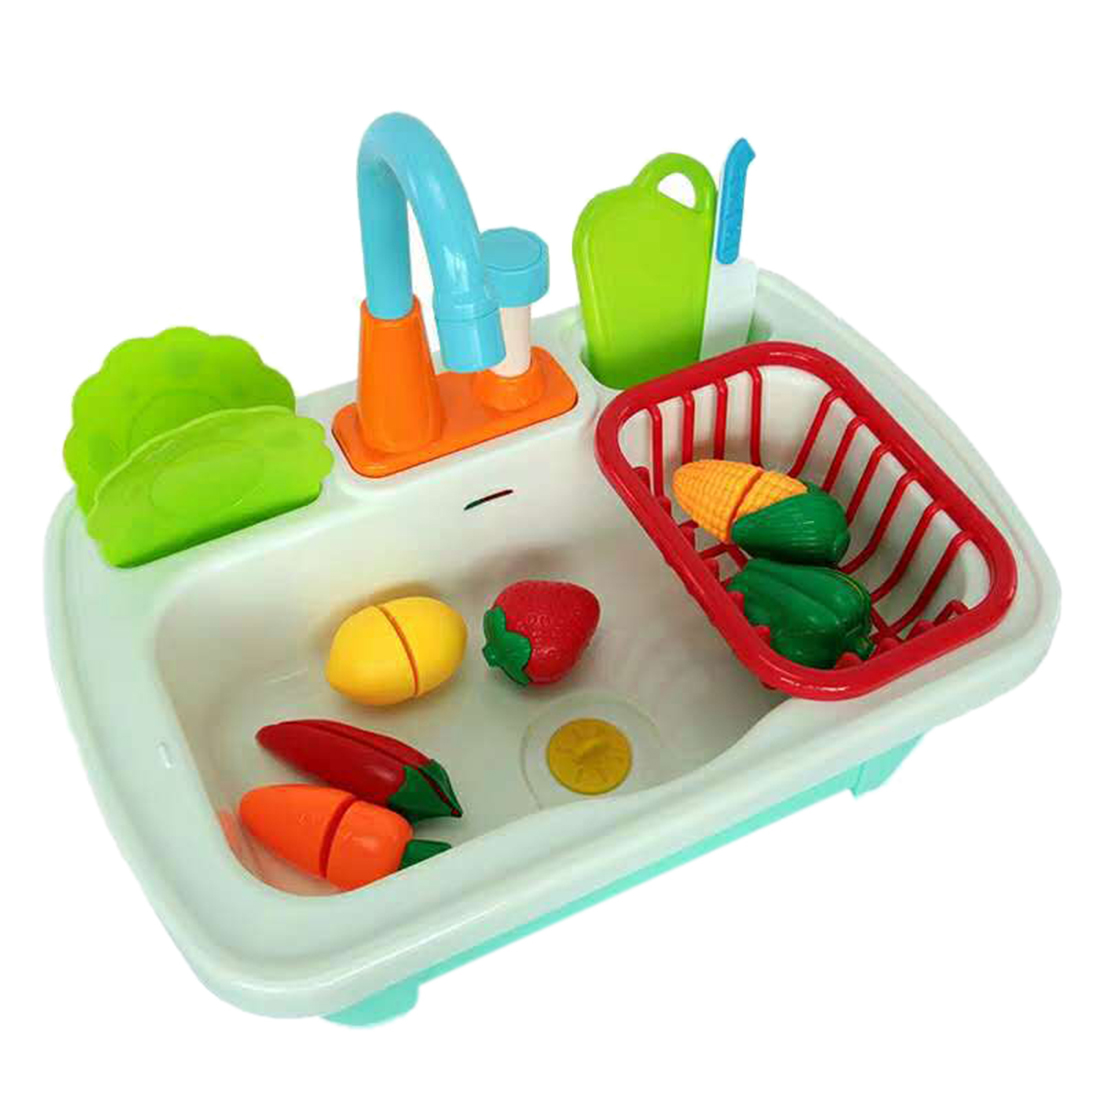 12Pcs Children Pretend Play Kitchen Chores Toys Washing Dish Sink Playset Classic Game Simulation Kitchen Toy Early Educate Gift